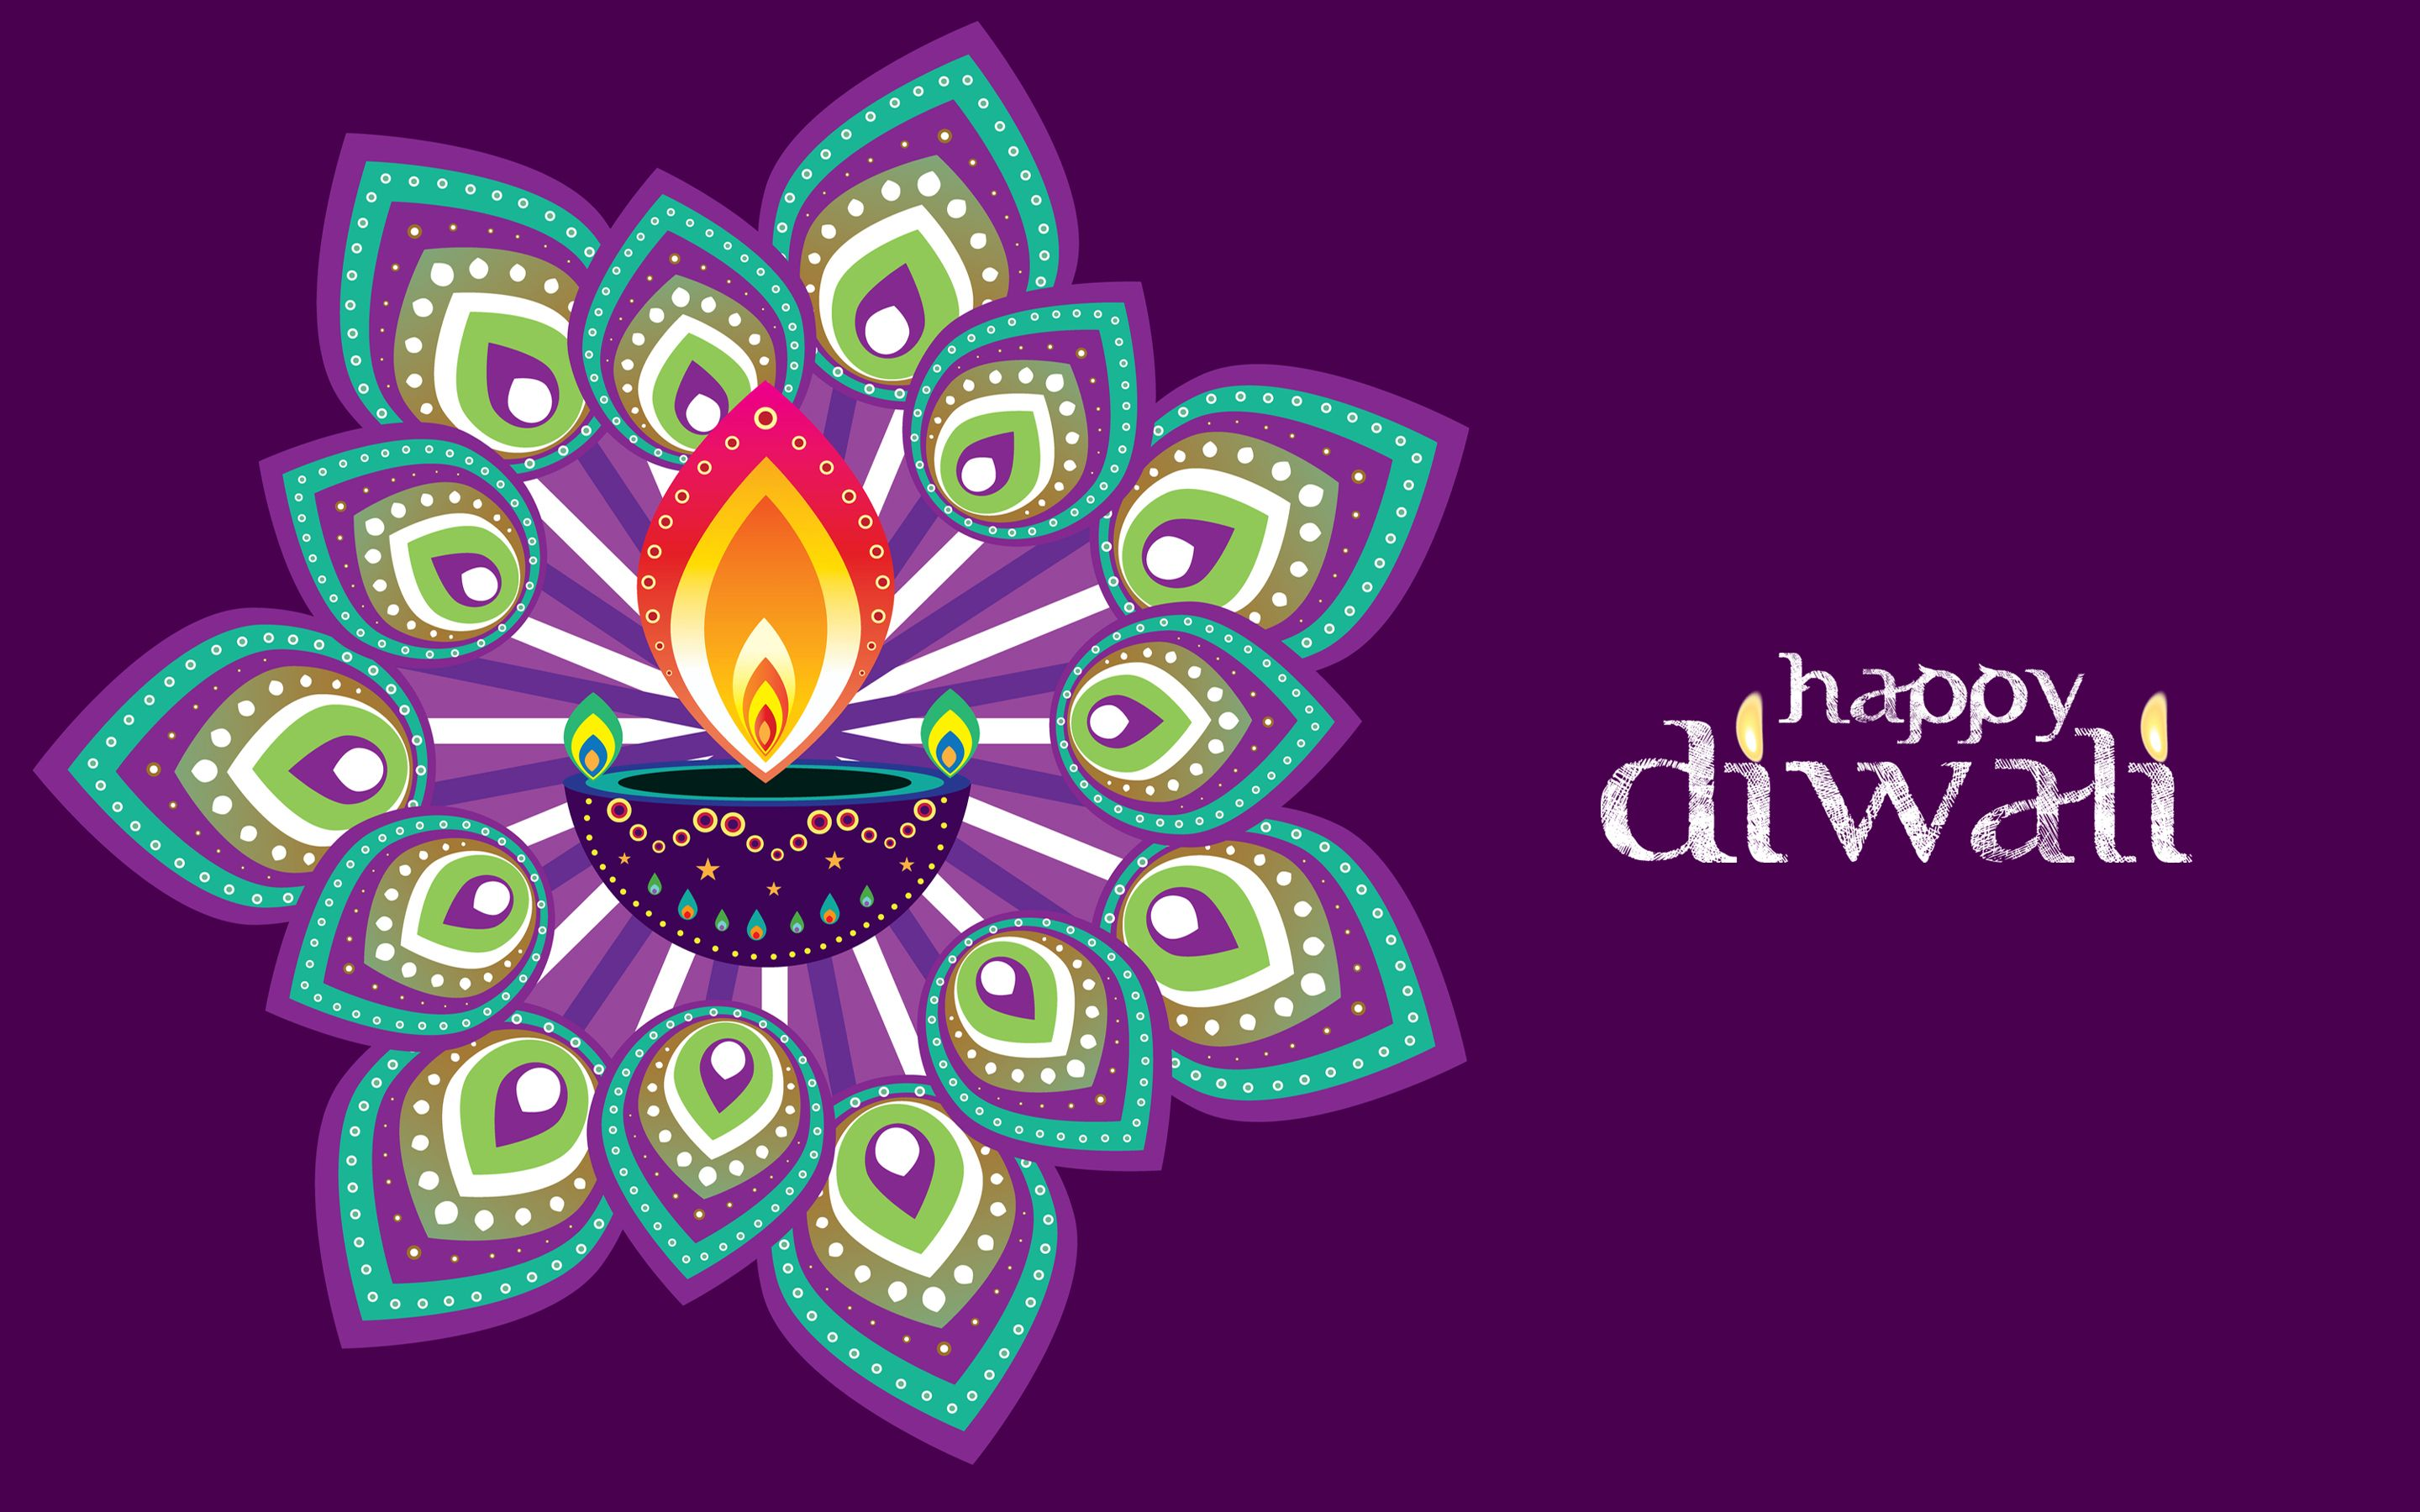 Happy diwali 2015 greeting cards and images download free http happy diwali 2015 greeting cards and images download free http kristyandbryce Gallery